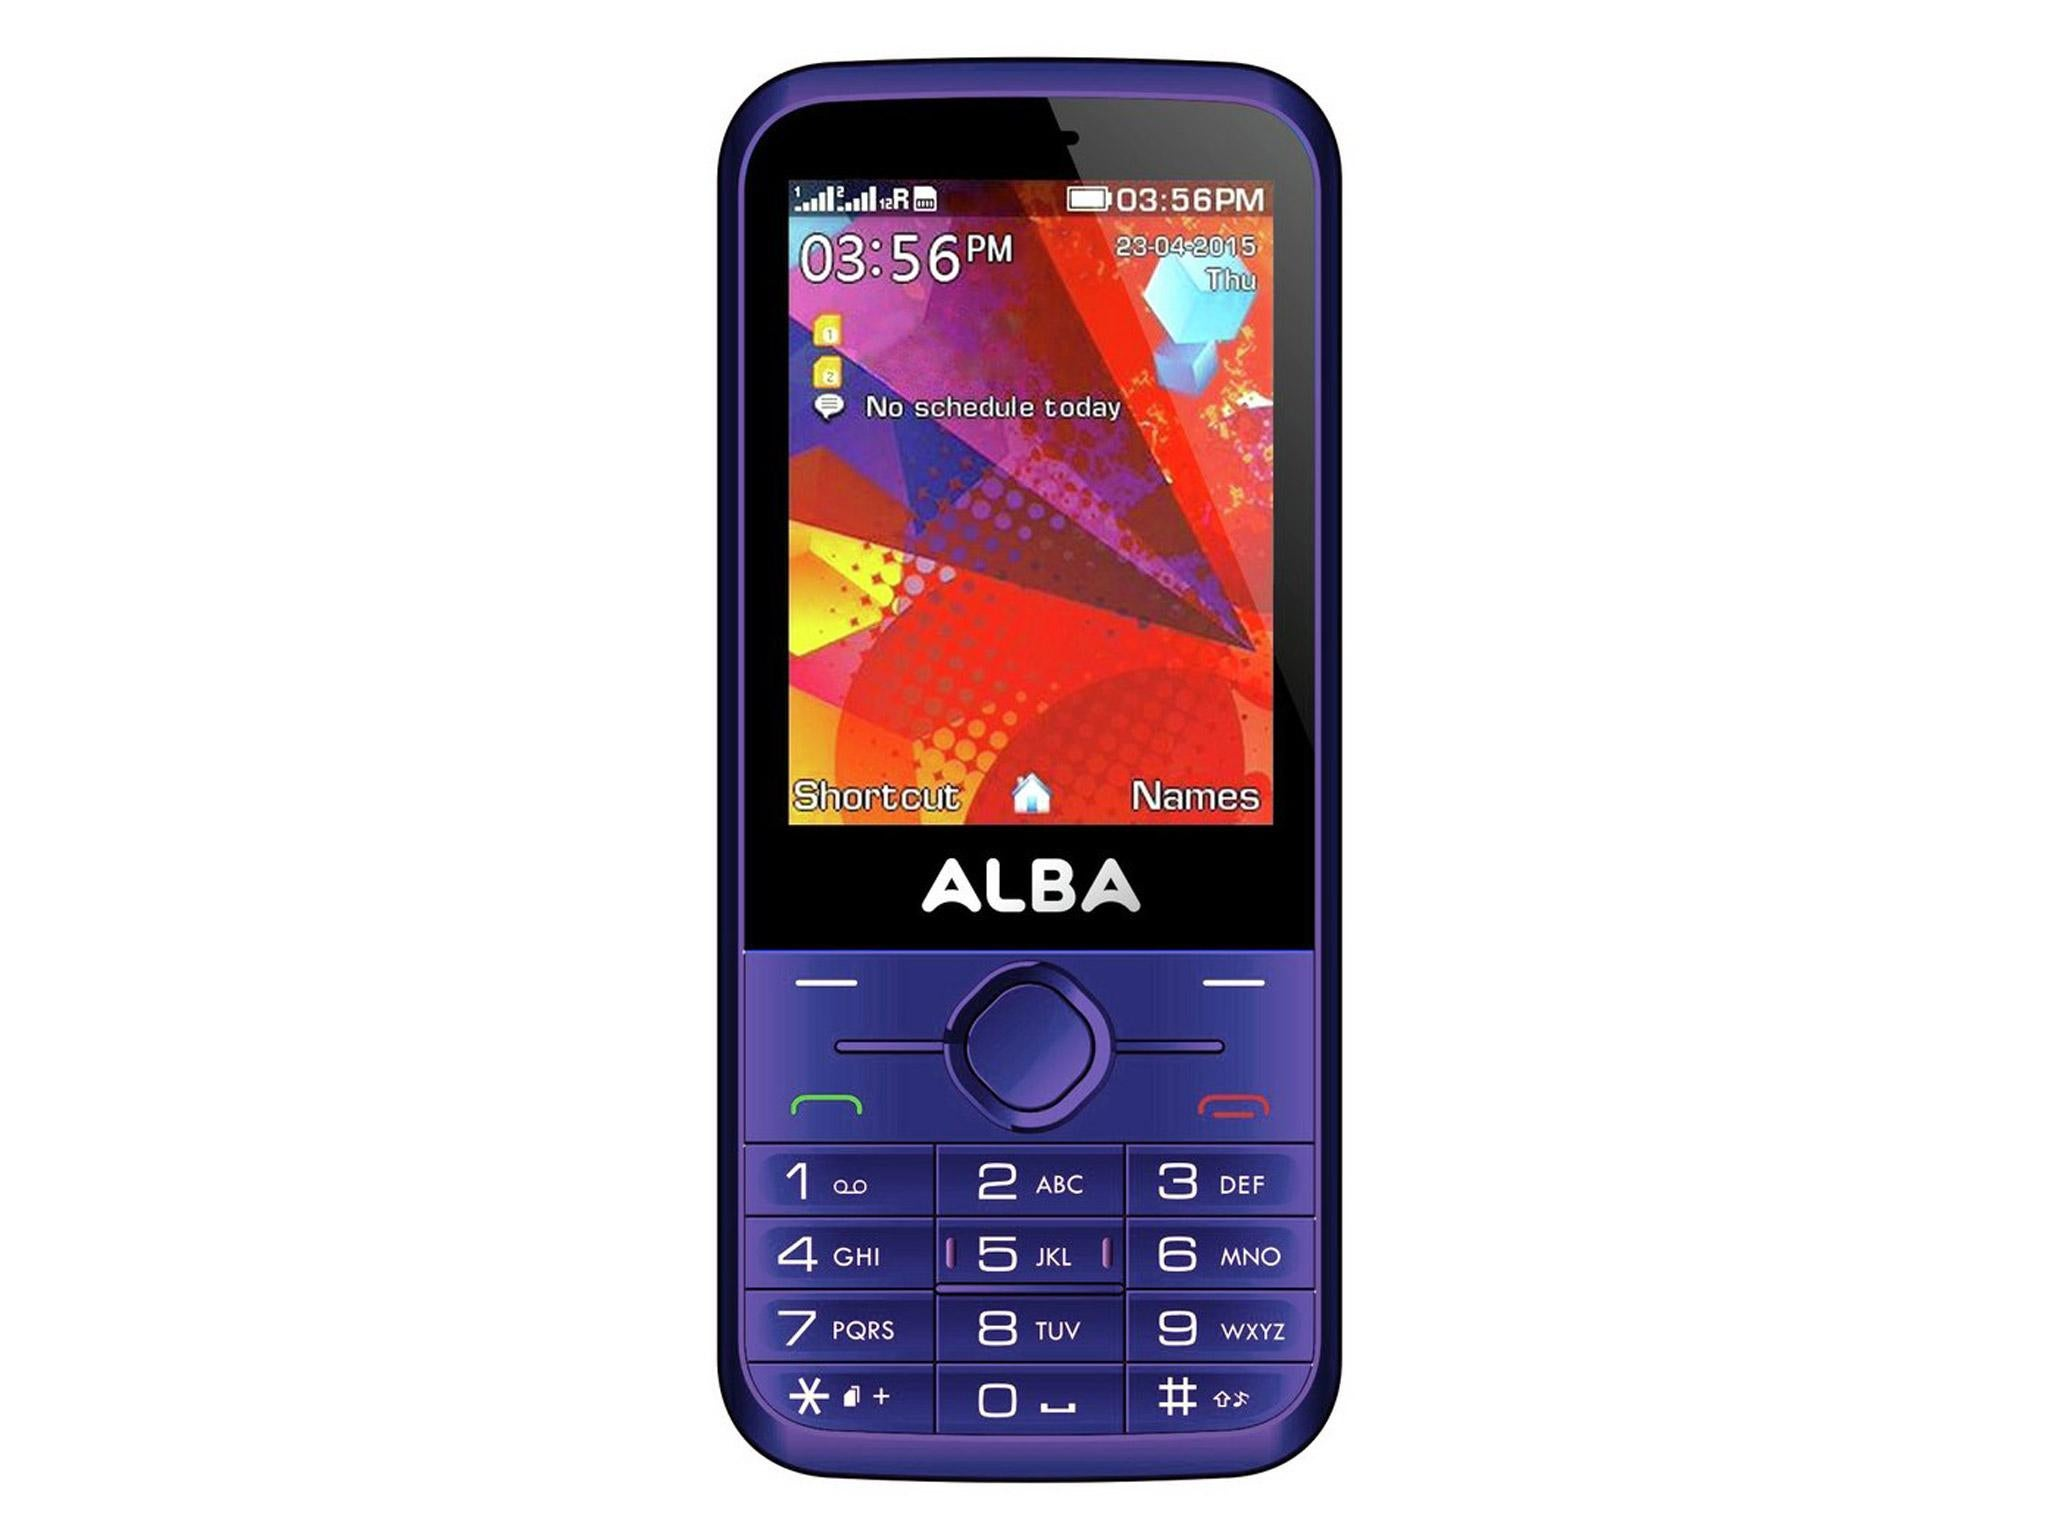 8 Best Feature Phones The Independent Nokia 105 Dual Sim Handphone Black Another Phone Alba Has A Basic 03 Megapixel Camera And Comes In Vibrant Purple Colour Though Red Blue Are Also Options